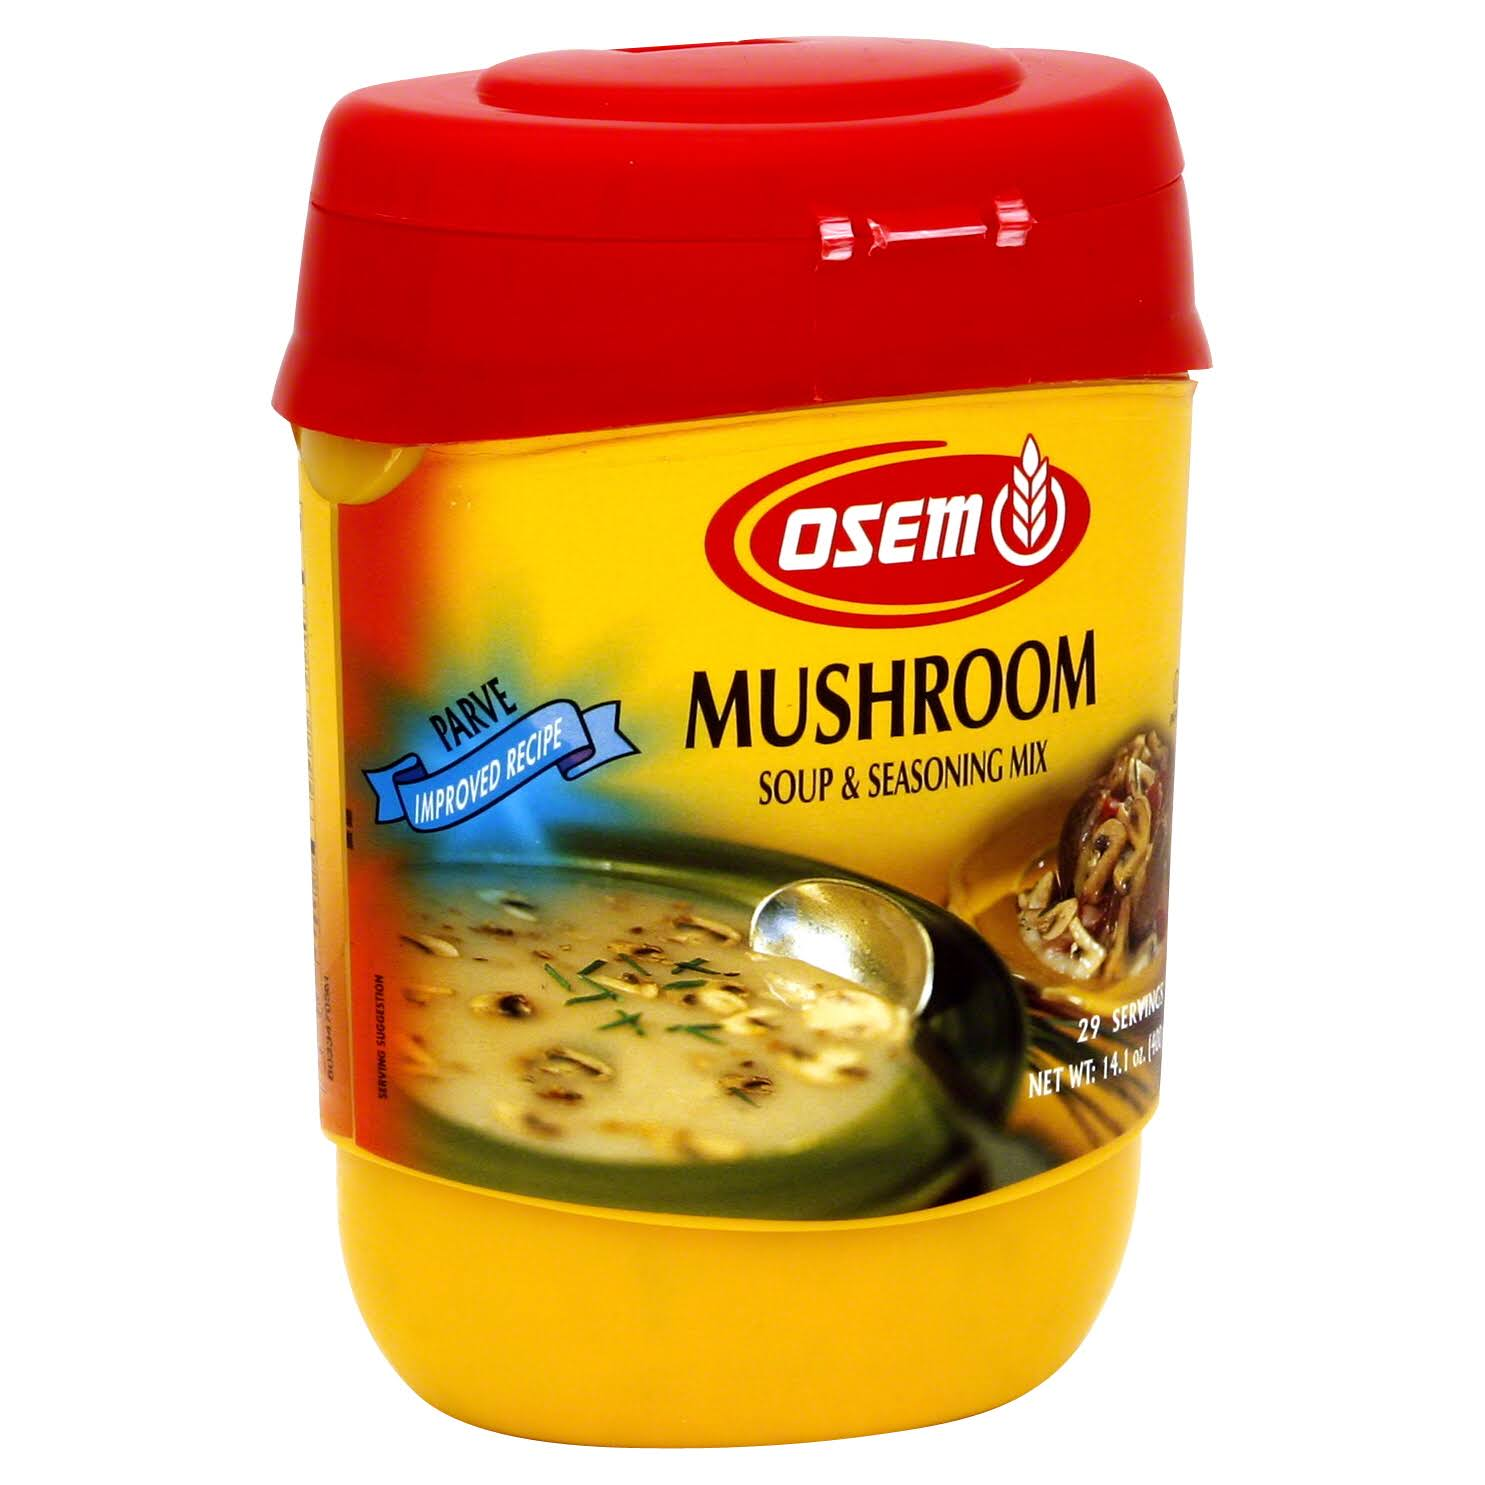 Osem Mushroom Soup & Seasoning Mix - 400g